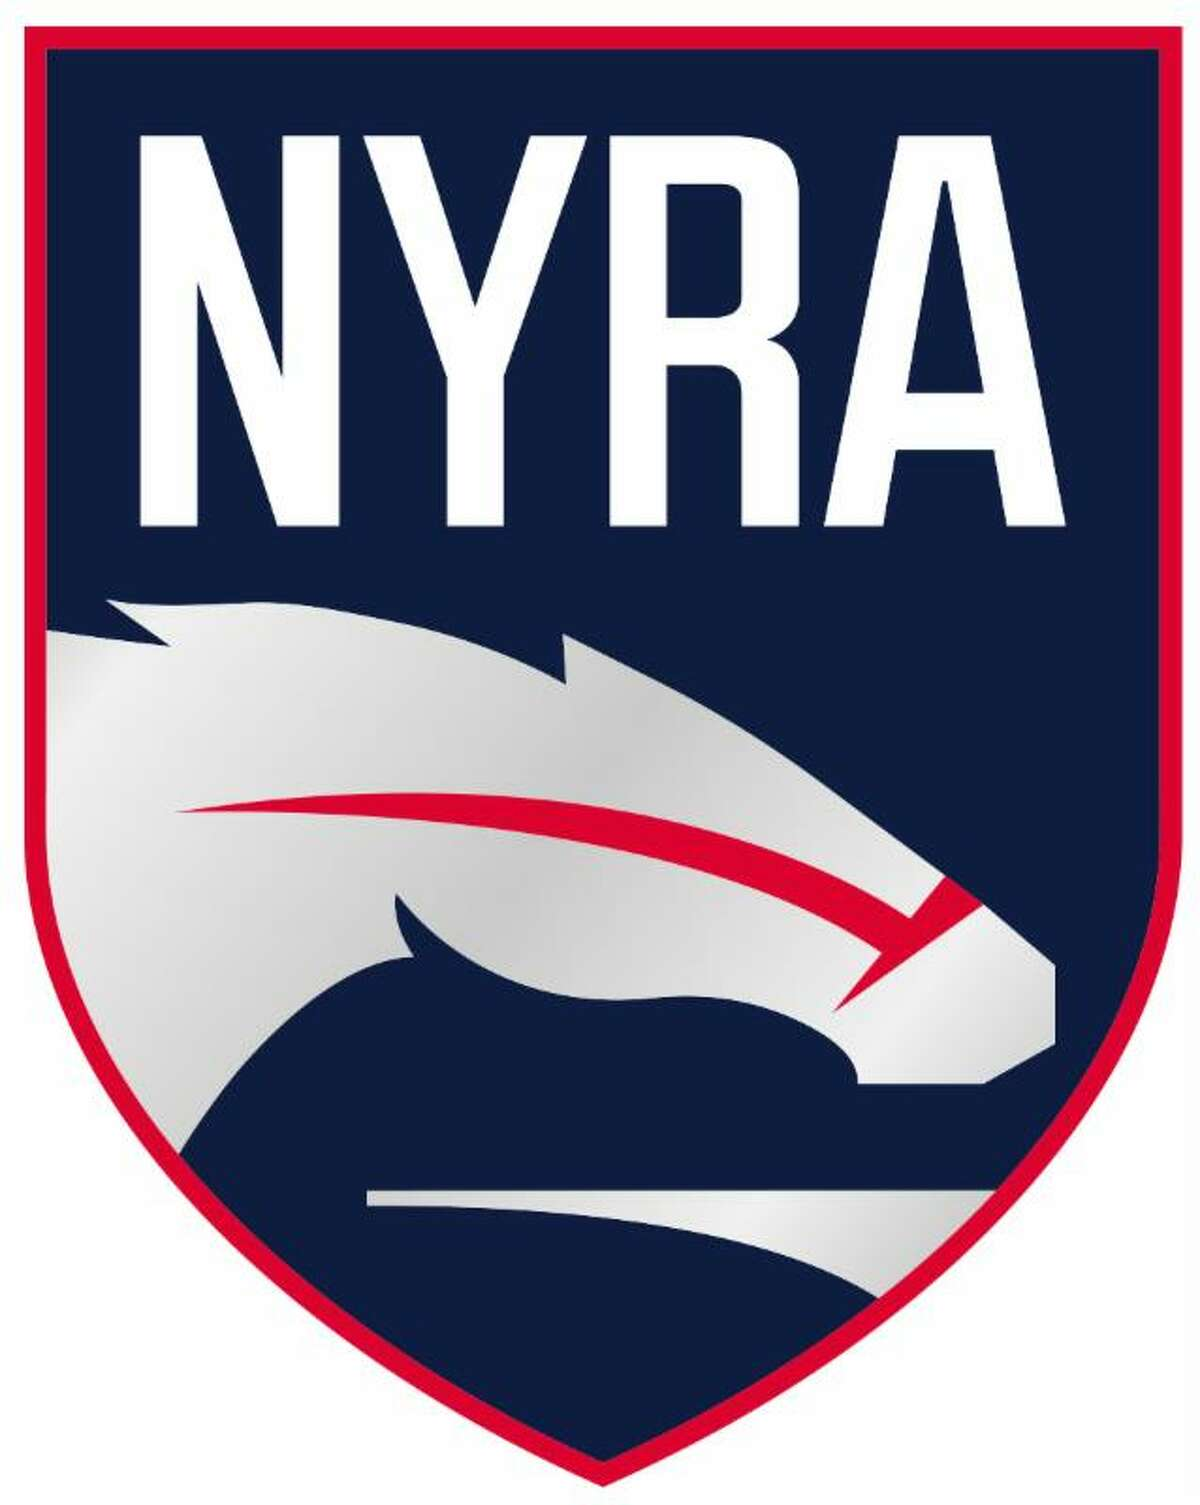 NYRA unveiled its new logo on July 8.